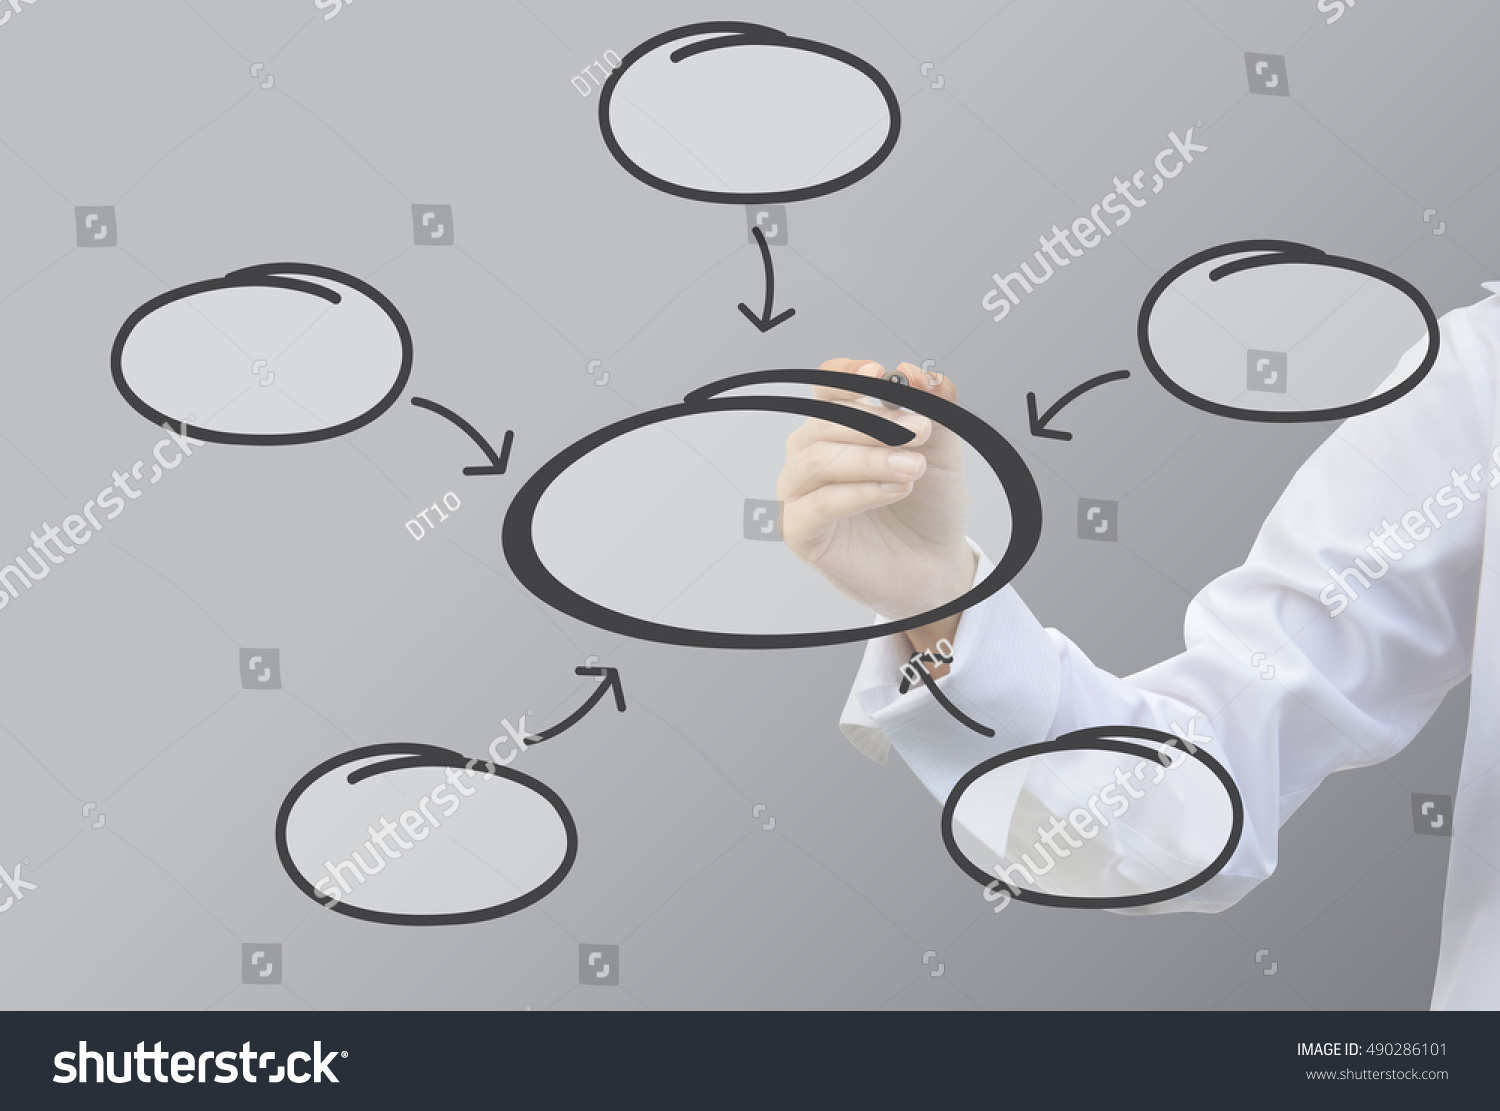 hight resolution of business writing relation of bubble diagram concept set5